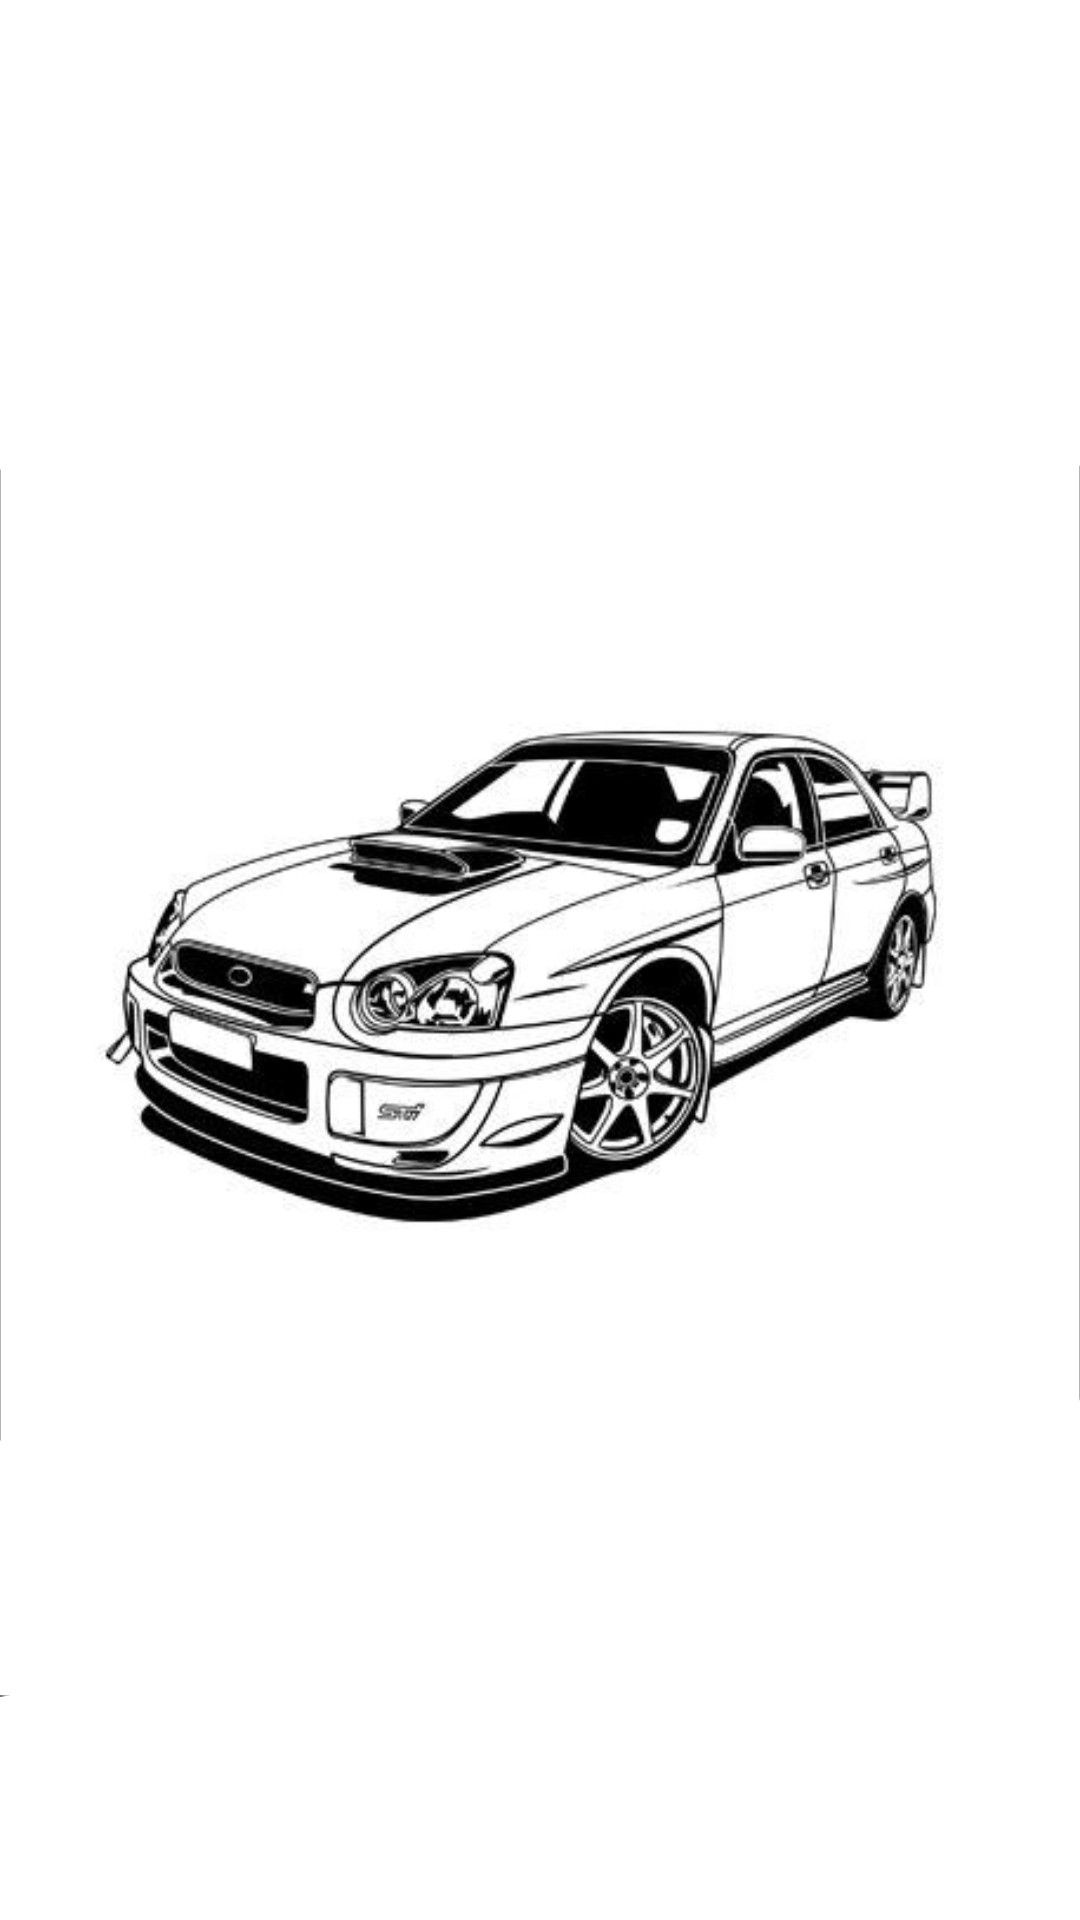 Jdm Cars Outline